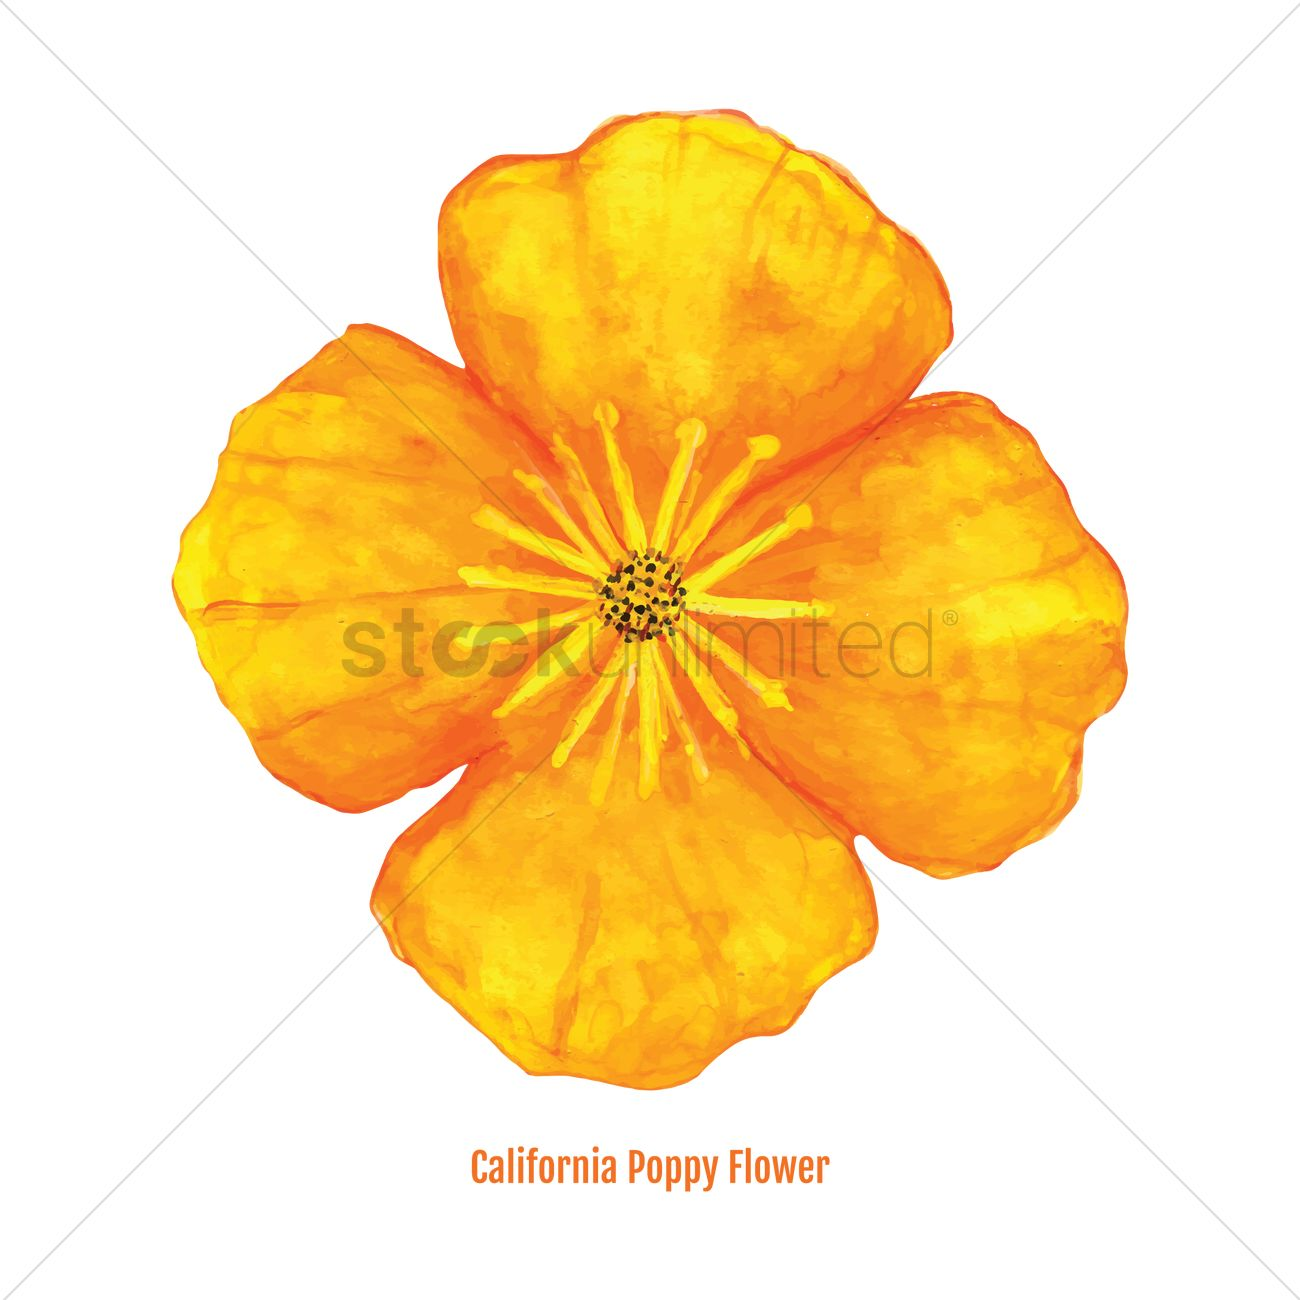 Free California Poppy Flower Vector Image 1606412 Stockunlimited